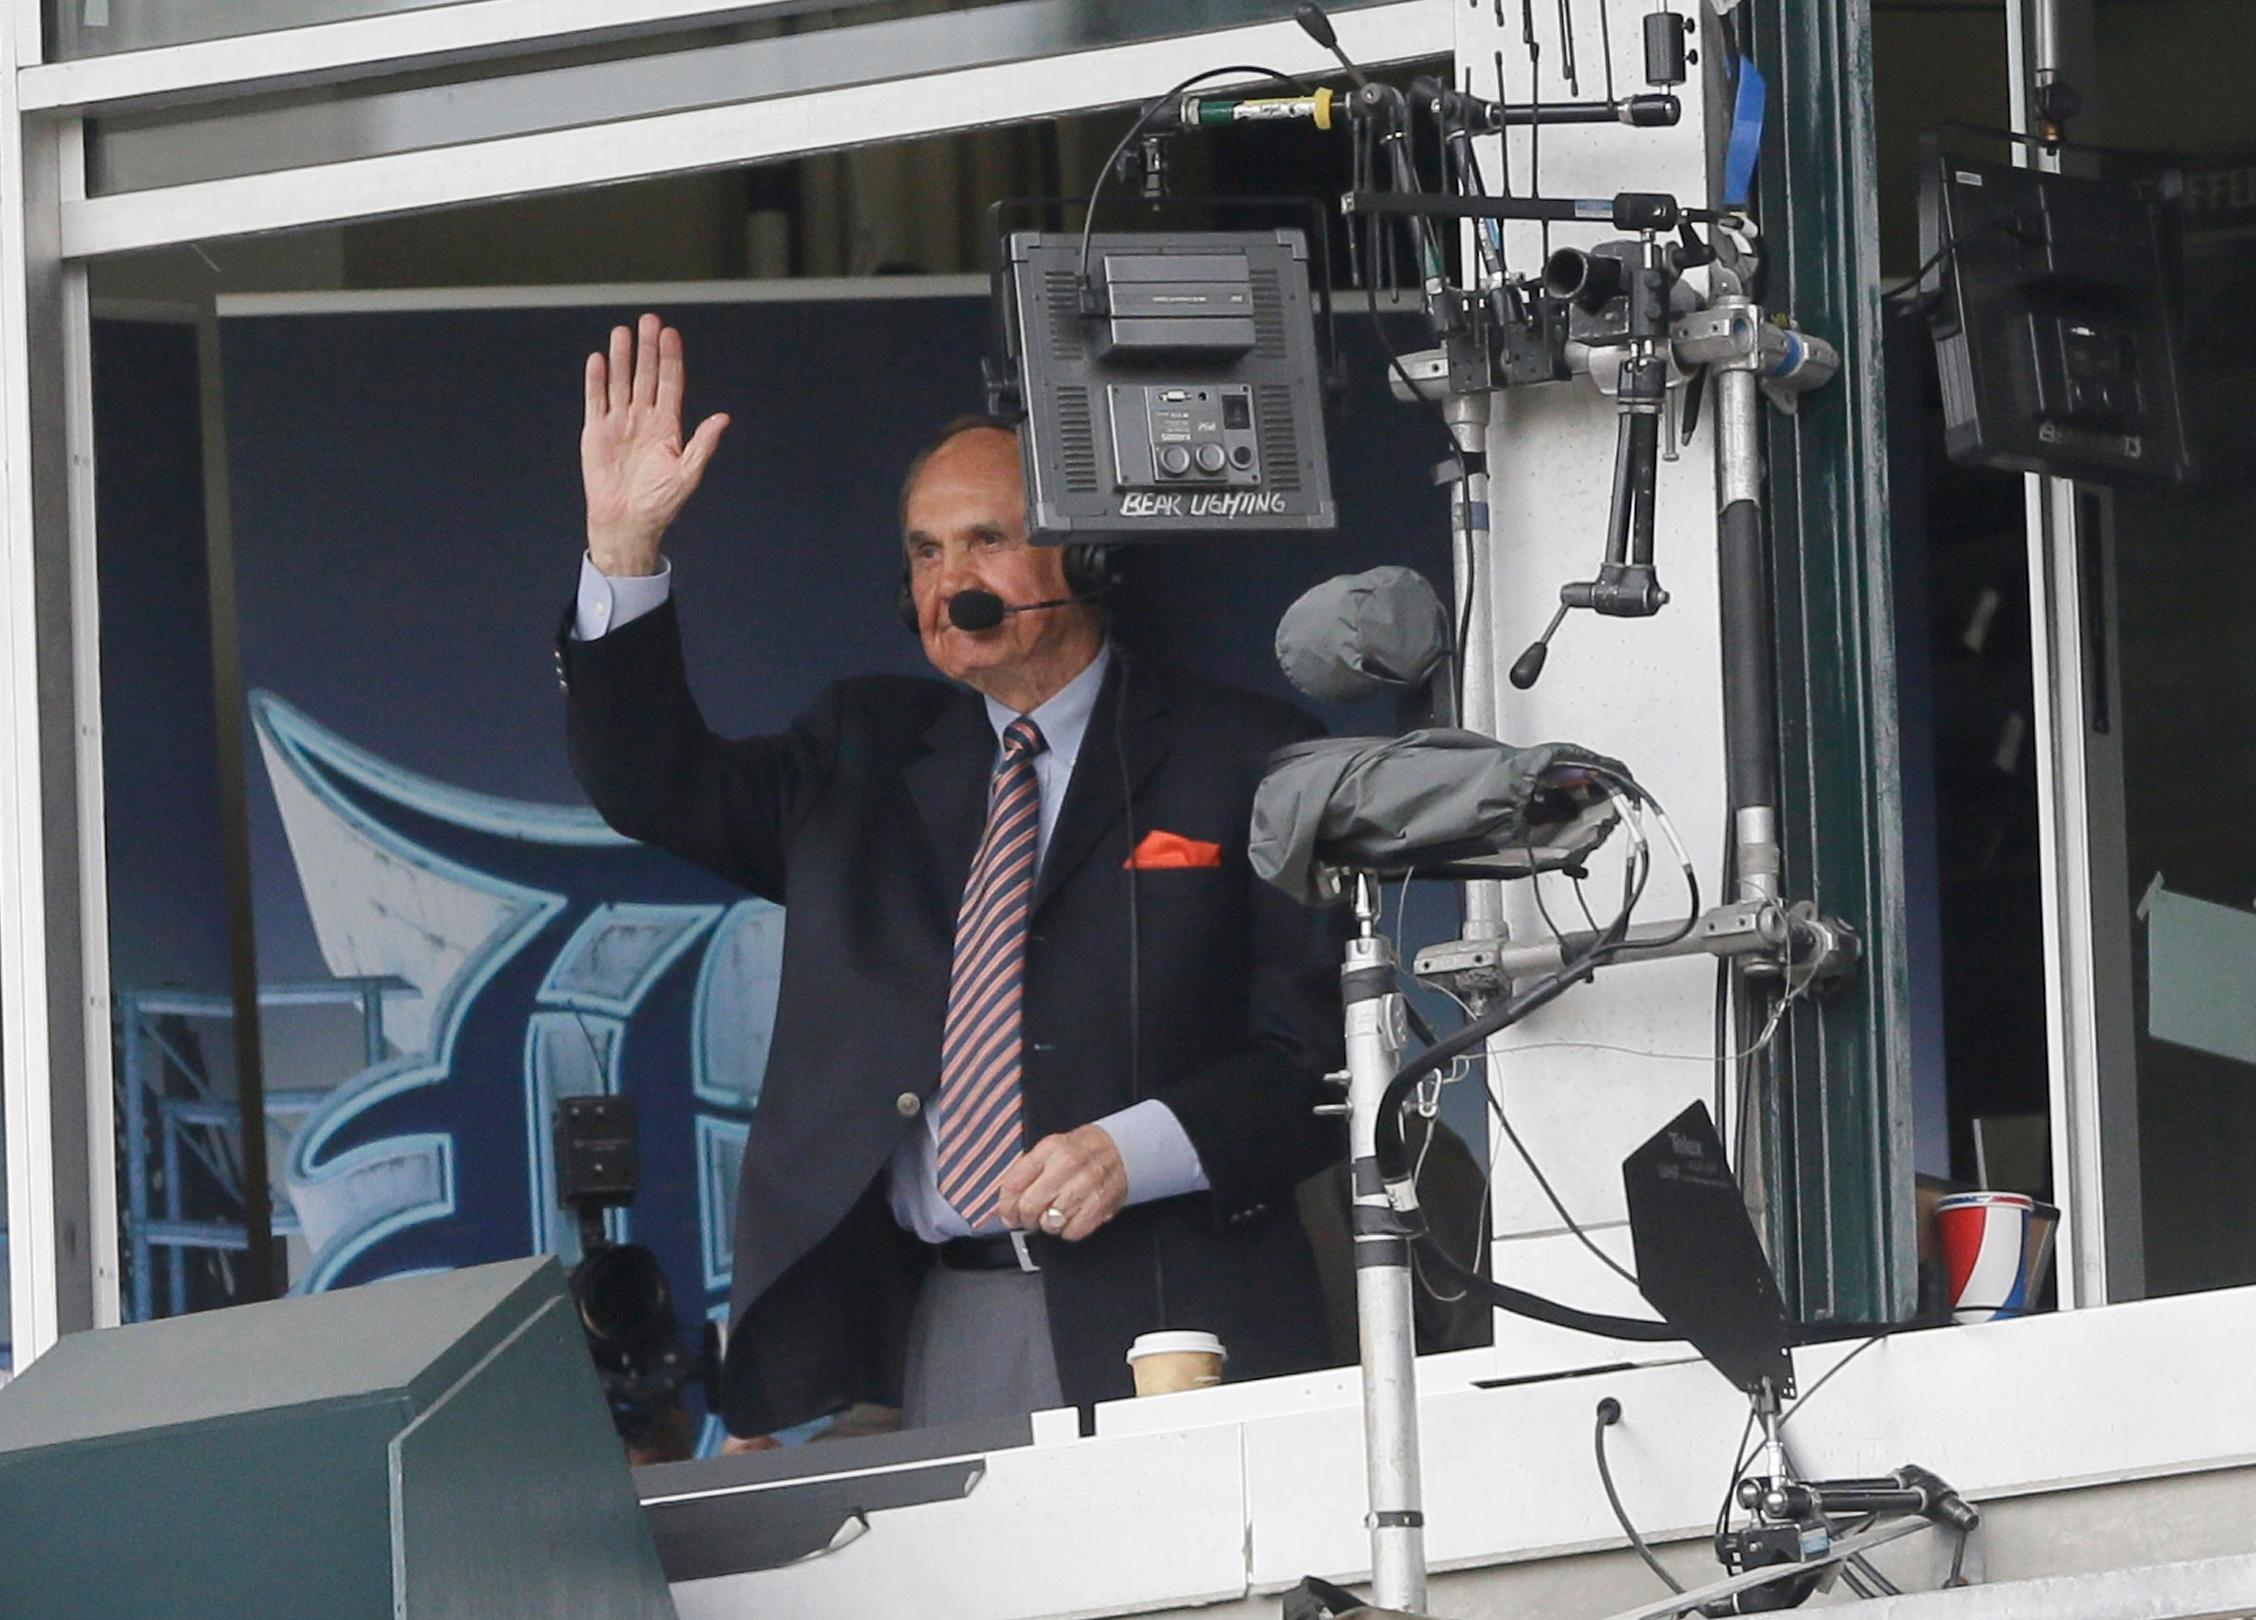 FILE - In this May 21, 2016, file photo, sportscaster Dick Enberg acknowledges the crowd during the first inning of a baseball game between the Detroit Tigers and the Tampa Bay Rays in Detroit. Enberg, the sportscaster who got his big break with UCLA basketball and went on to call Super Bowls, Olympics, Final Fours and Angels and Padres baseball games, died Thursday, Dec. 21, 2017. He was 82. Engberg's daughter, Nicole, confirmed the death to The Associated Press. She said the family became concerned when he didn't arrive on his flight to Boston on Thursday, and that he was found dead at his home in La Jolla, a San Diego neighborhood. (AP Photo/Carlos Osorio, File)